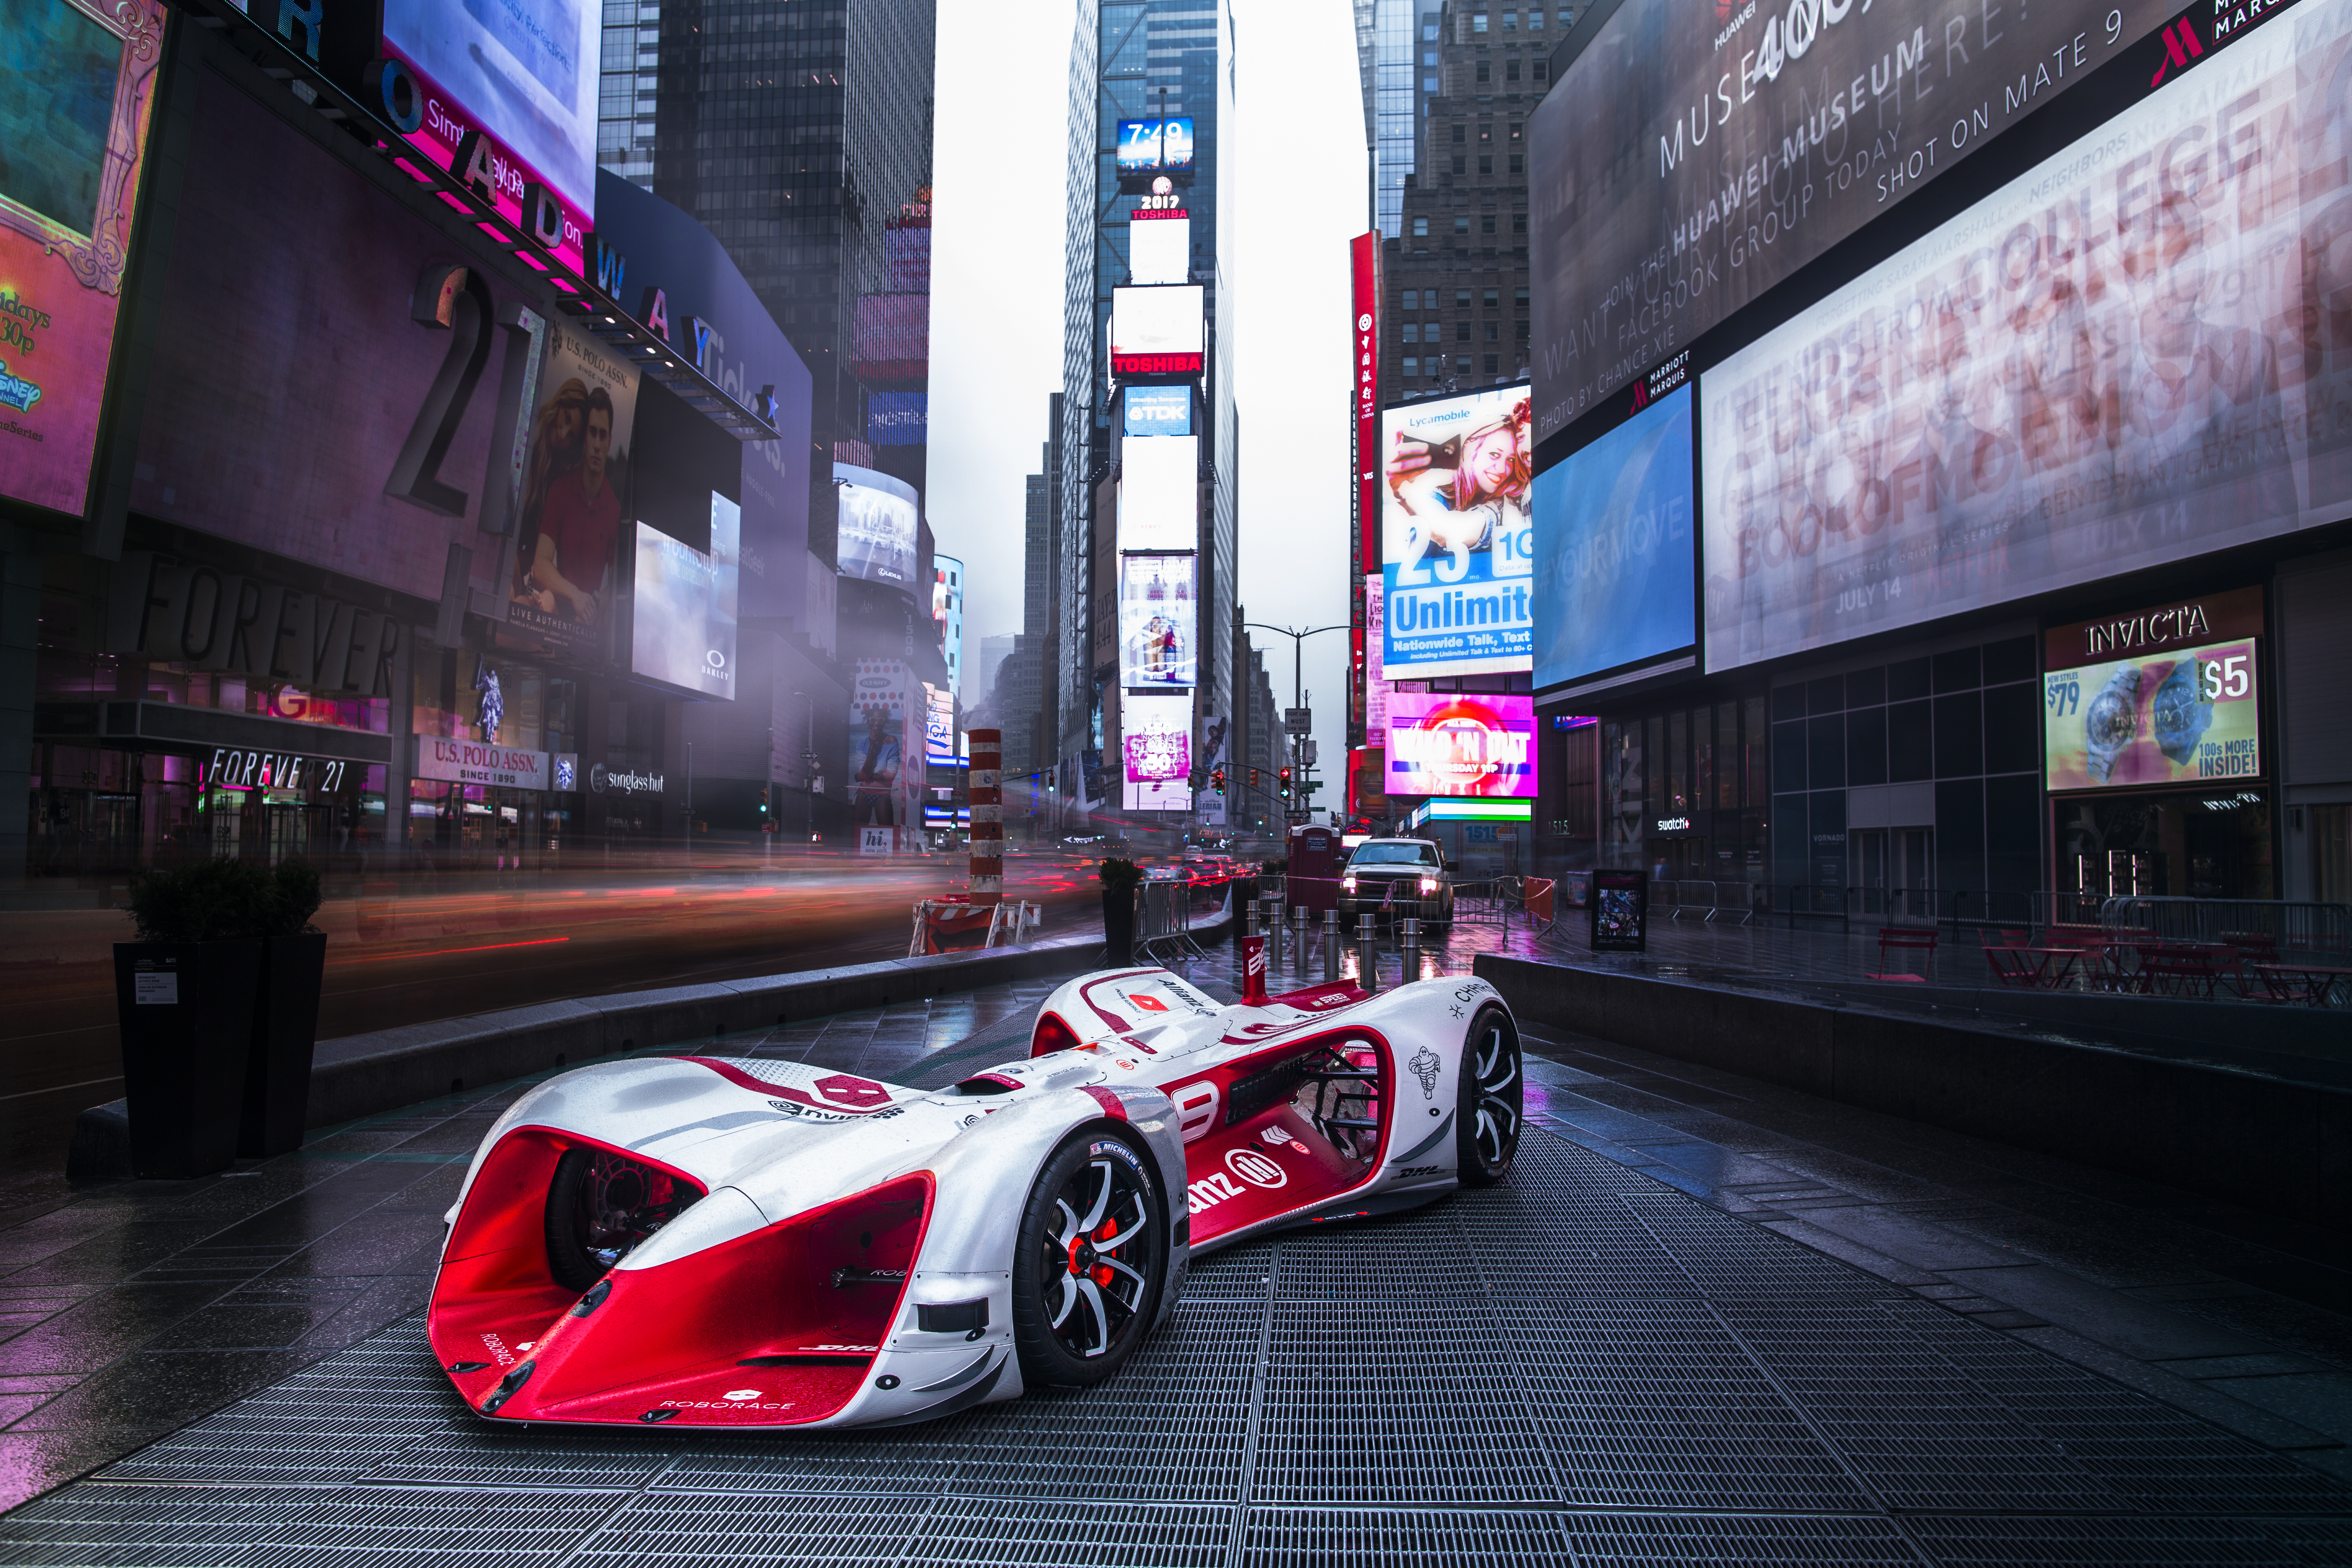 Roborace's Robocar makes its U.S. debut in Times Square in New York City. (Photo: Business Wire)